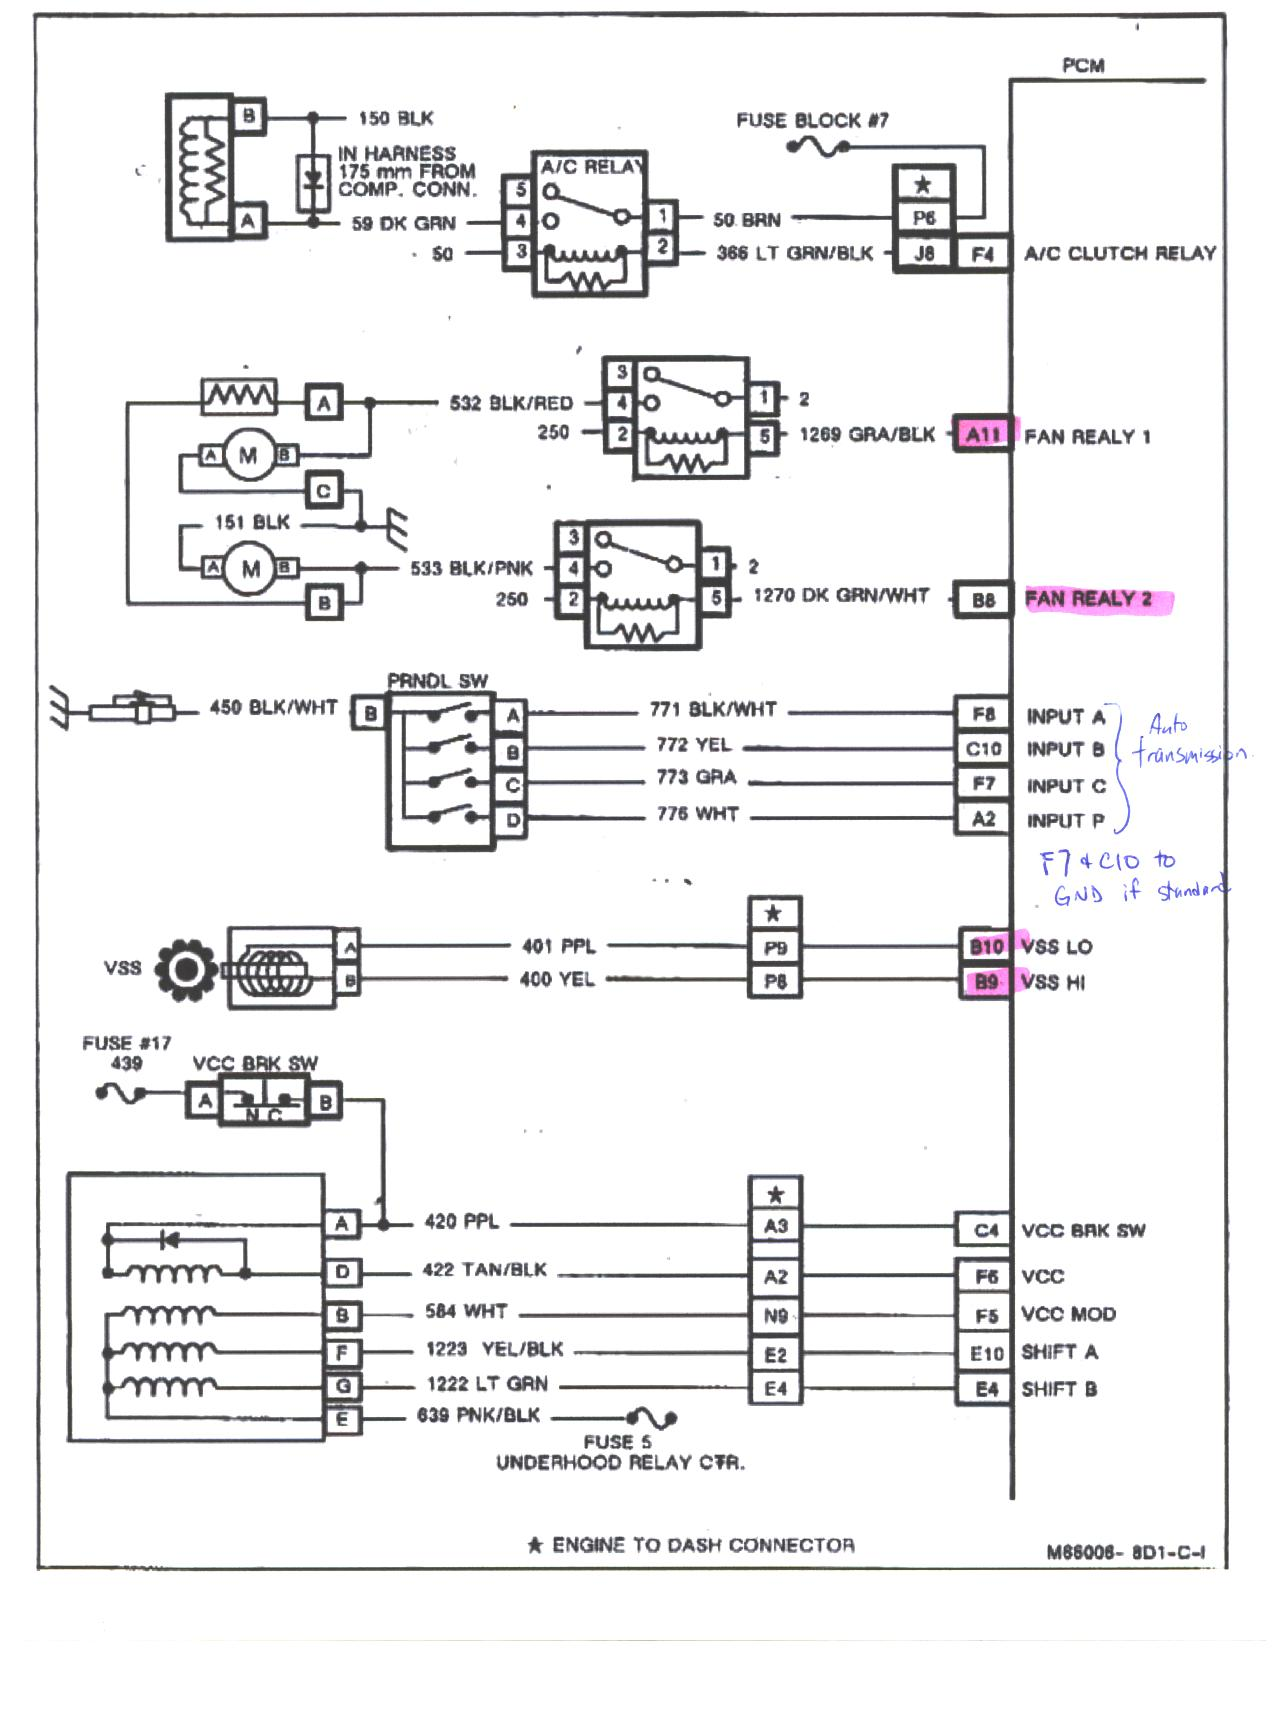 chevy astro van wiring diagram IYgoePB chevy astro van wiring diagram image details 2000 Astro Van Wiring Diagram at edmiracle.co